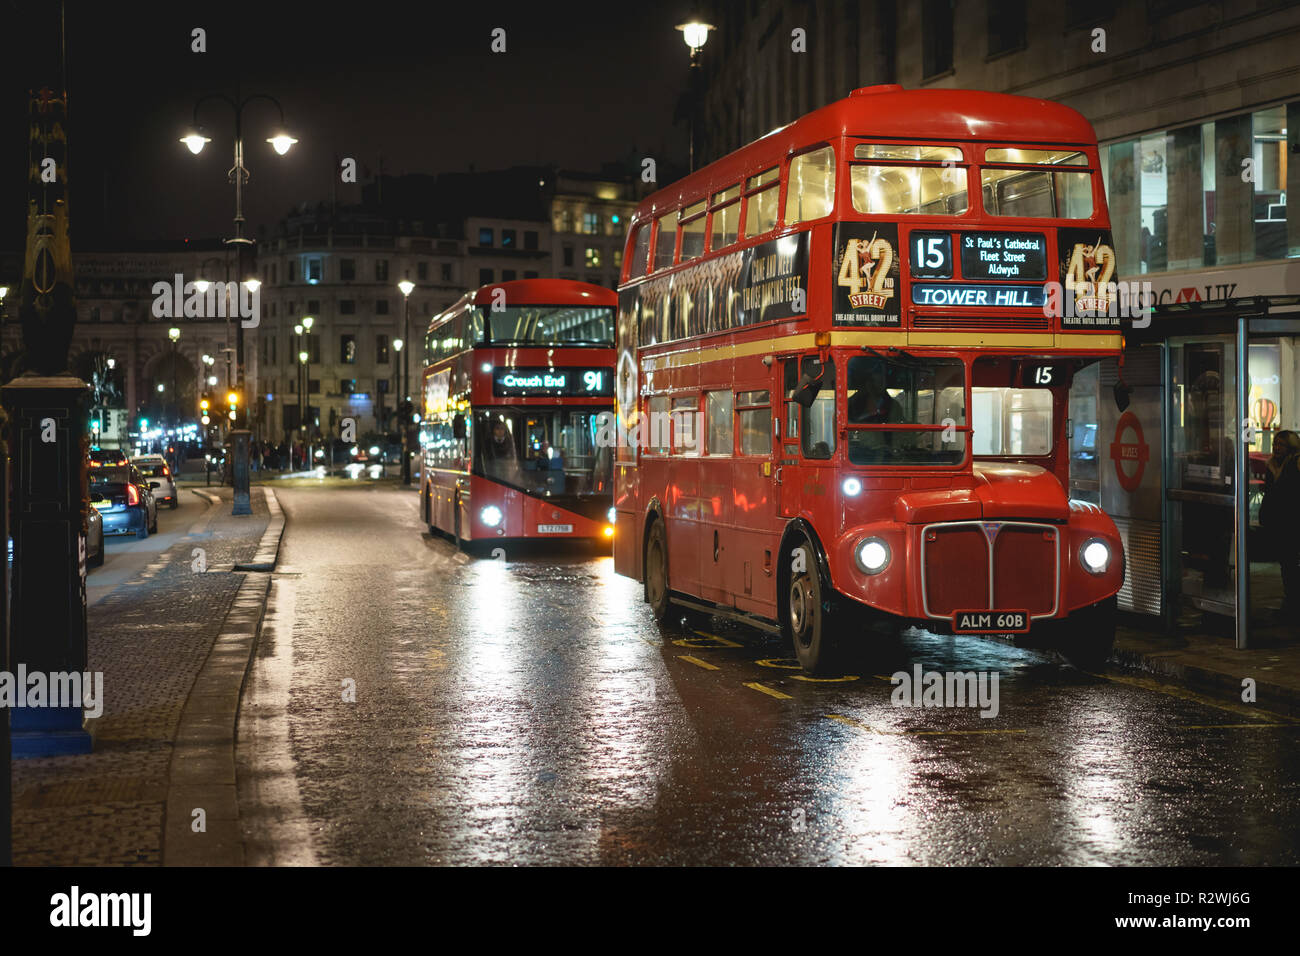 London, UK - February, 2019. A vintage red double-decker bus (Routemaster) in a street in central London. - Stock Image